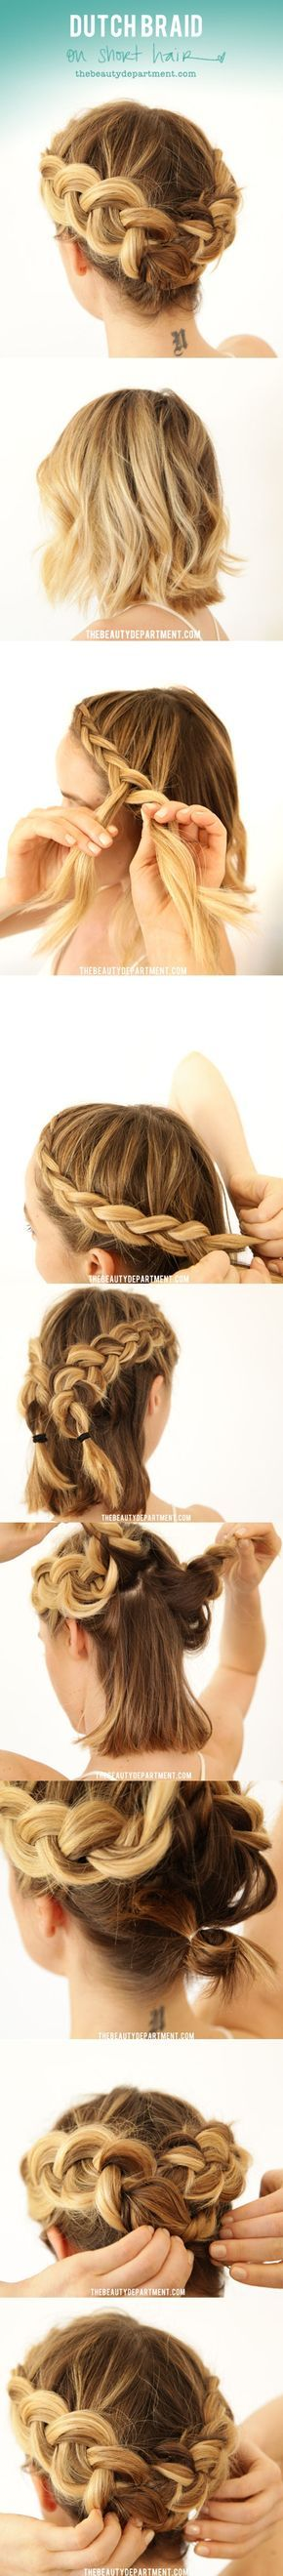 TBD - Short Hair Braid